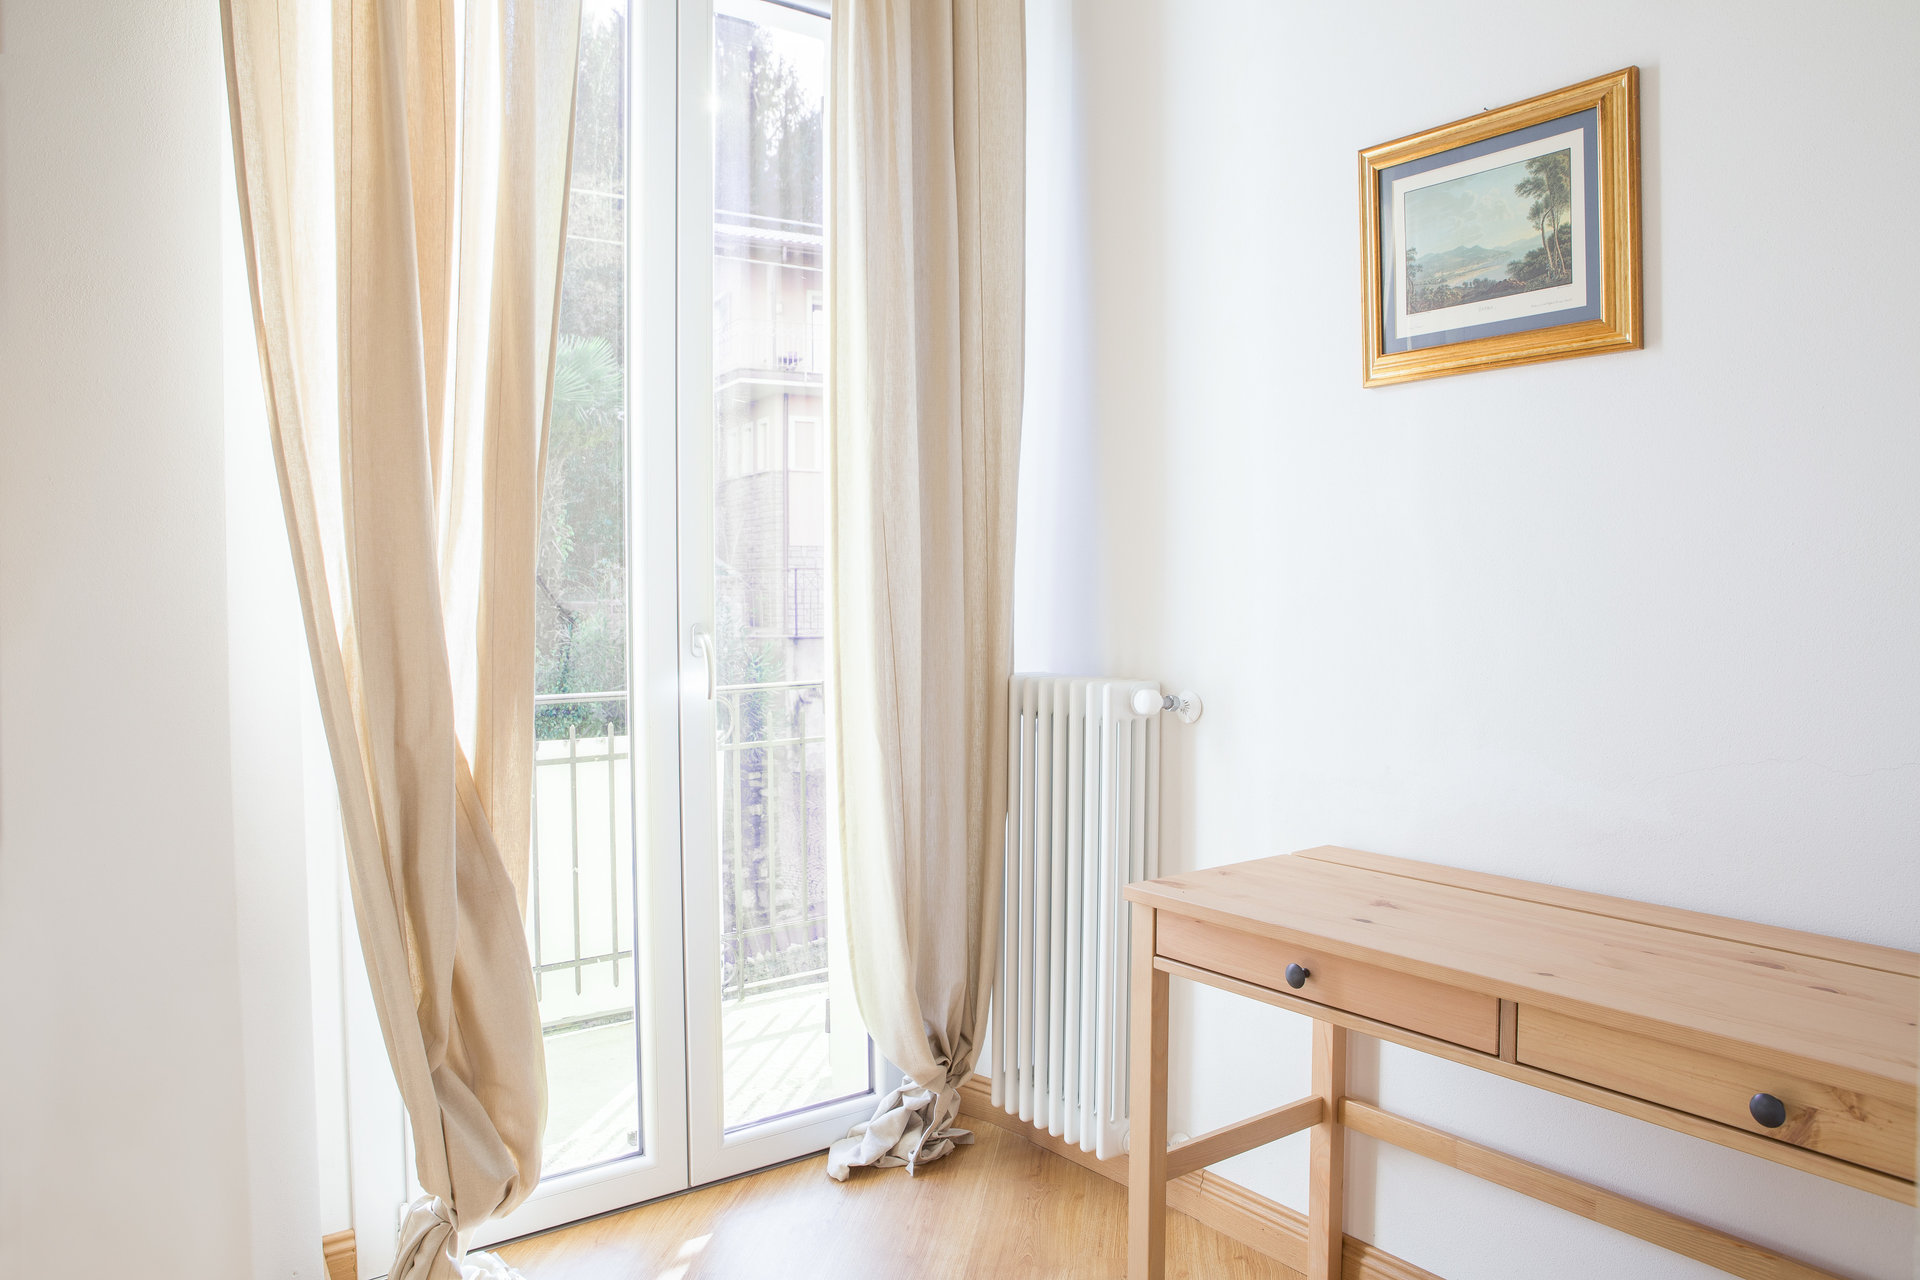 Furnished apartment for sale in Stresa - bedroom with balcony